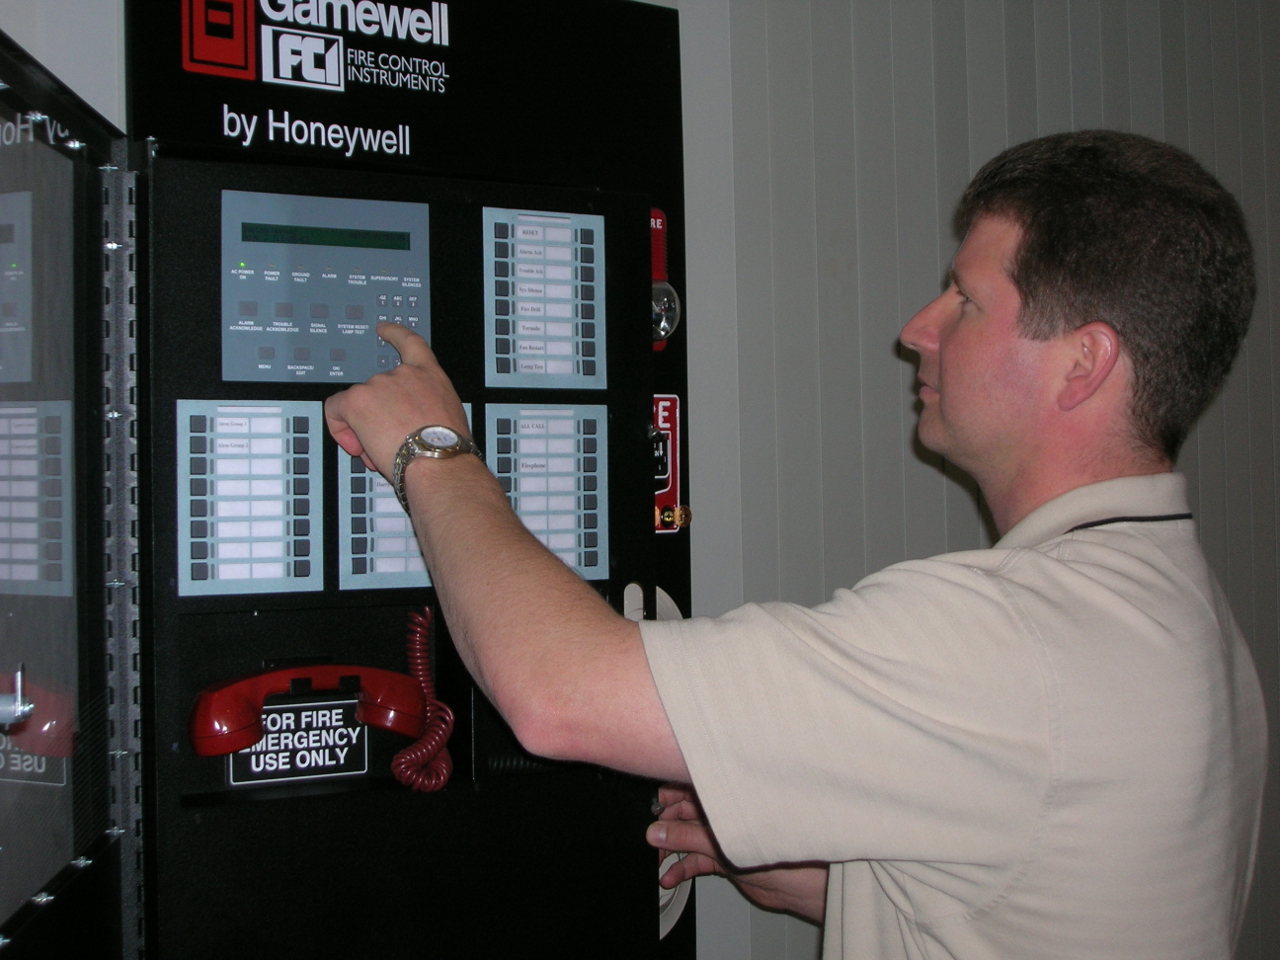 Commercial_Fire_Alarm_Systems_01 commercial fire alarm systems buildipedia honeywell fire alarm system wiring diagram at bayanpartner.co